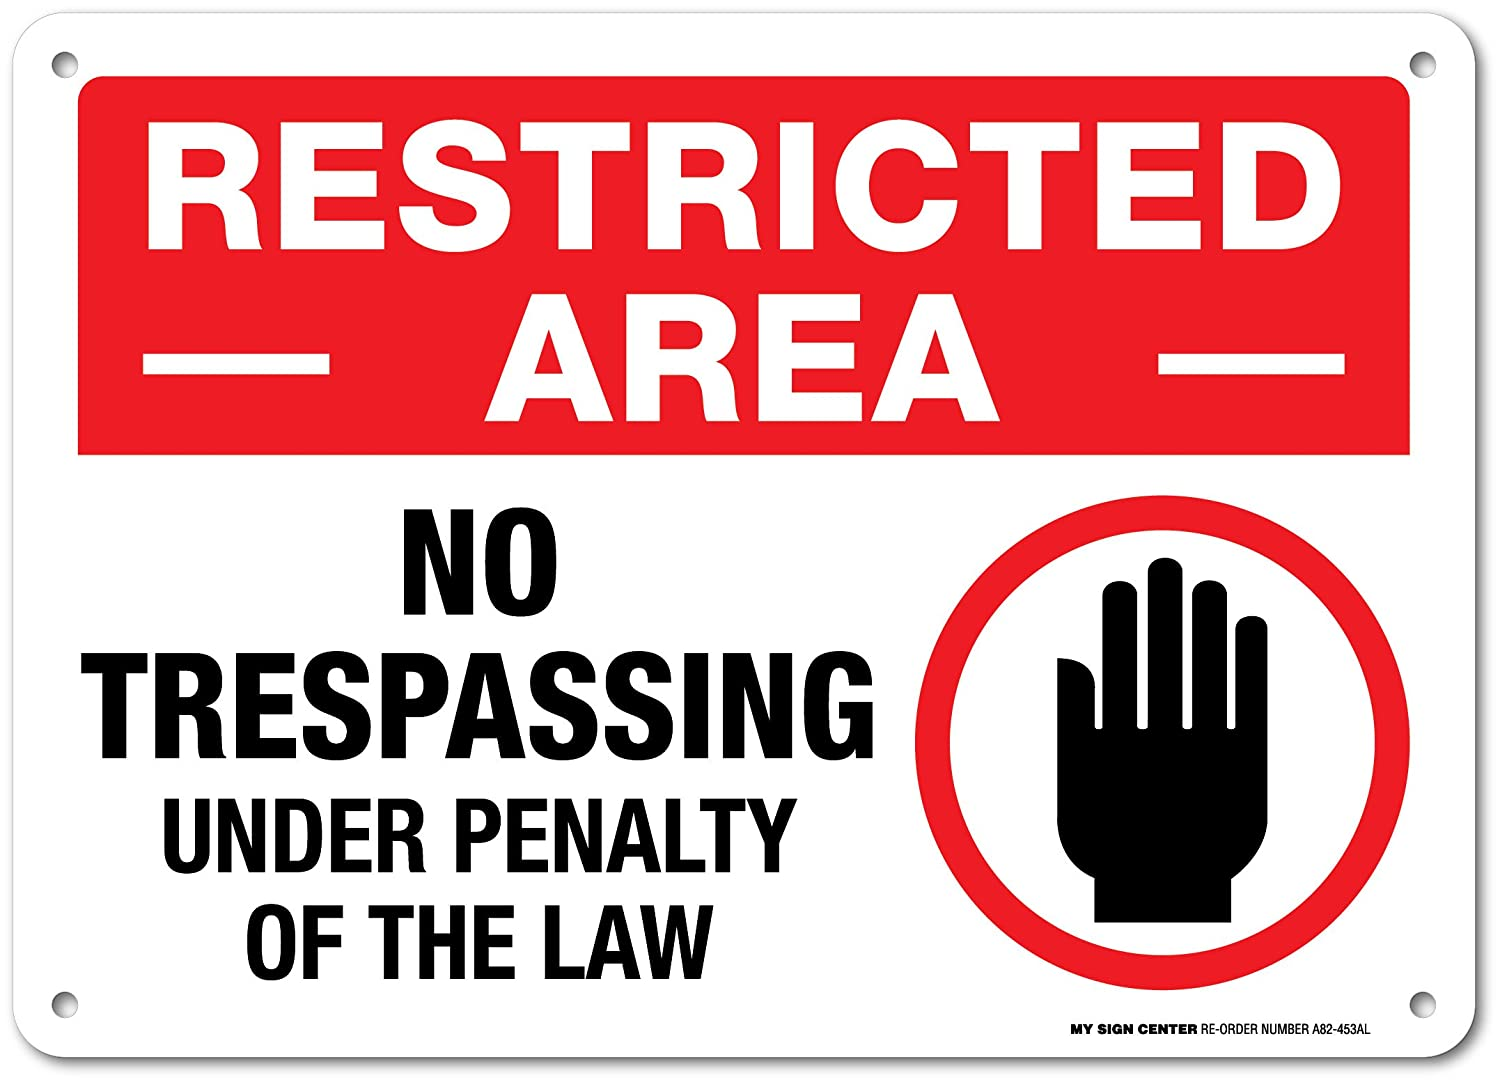 Restricted Area No Trespassing Sign - 14x10 .040 Rust Free Aluminum - Made in USA - UV Protected and Weatherproof - A82-453AL